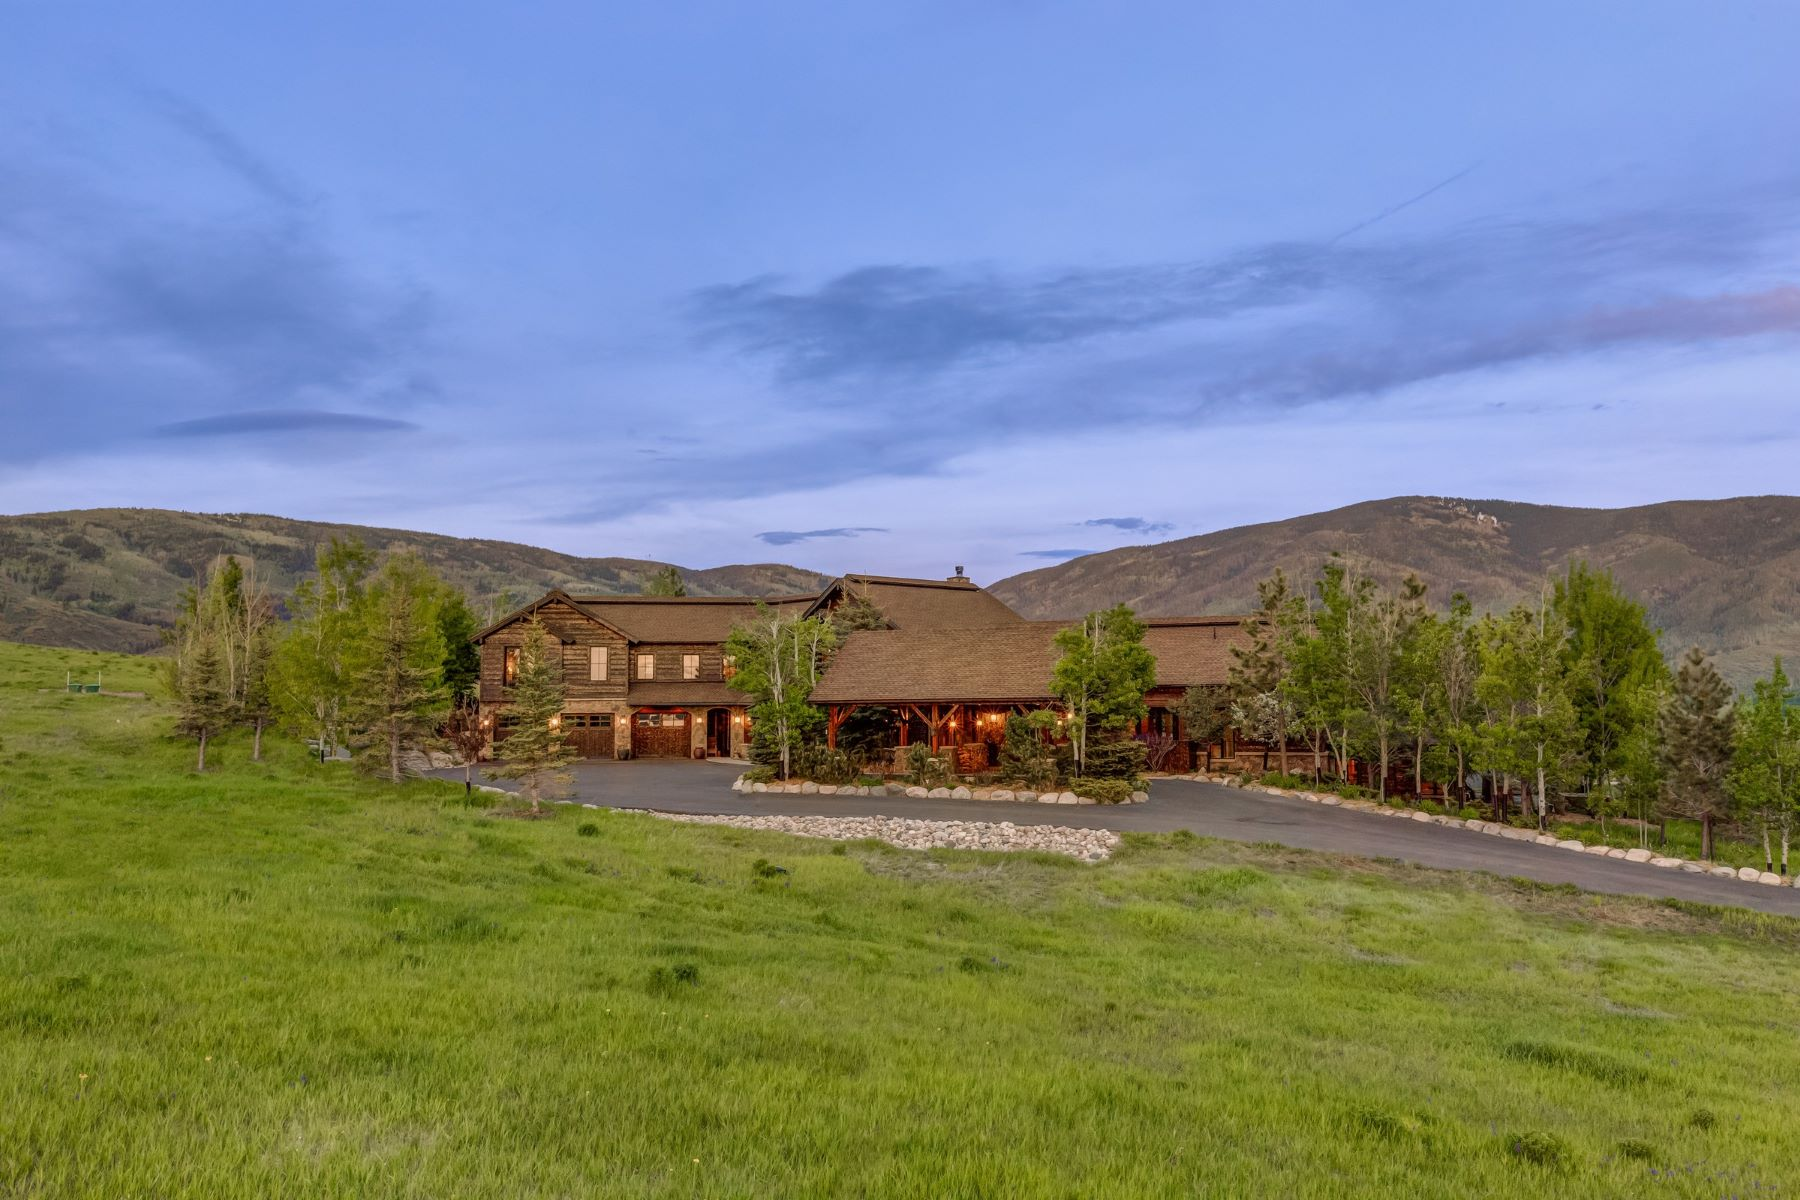 Single Family Home for Sale at Lake Catamount Beautiful High-End Design Lake Catamount Home 32120 County Road 14C Steamboat Springs, Colorado, 80487 United States